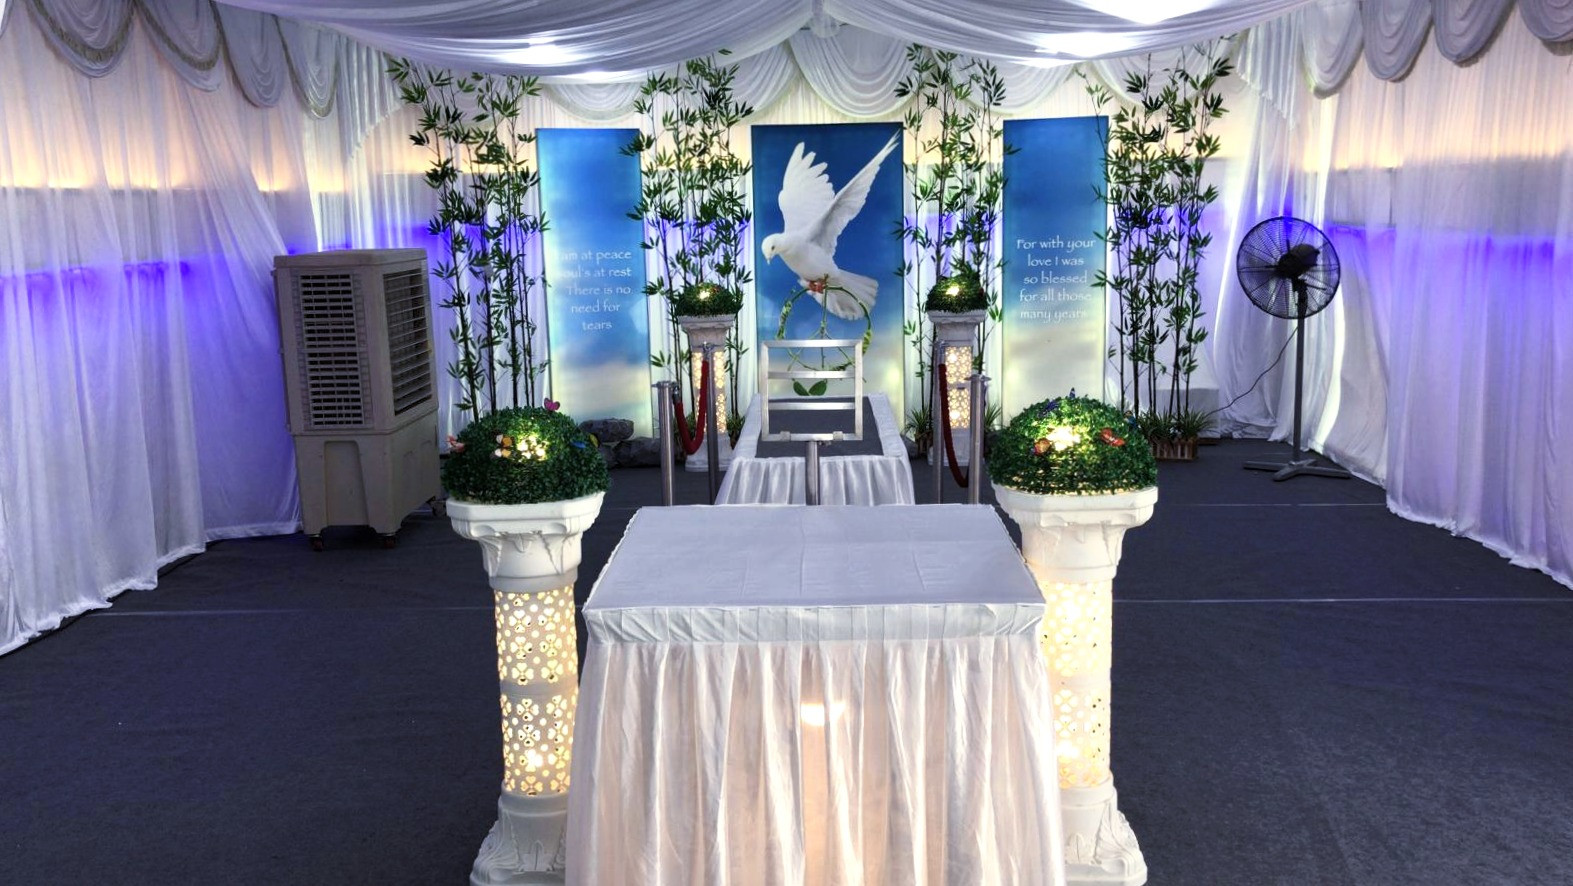 Singapore Free Thinker Funeral Services